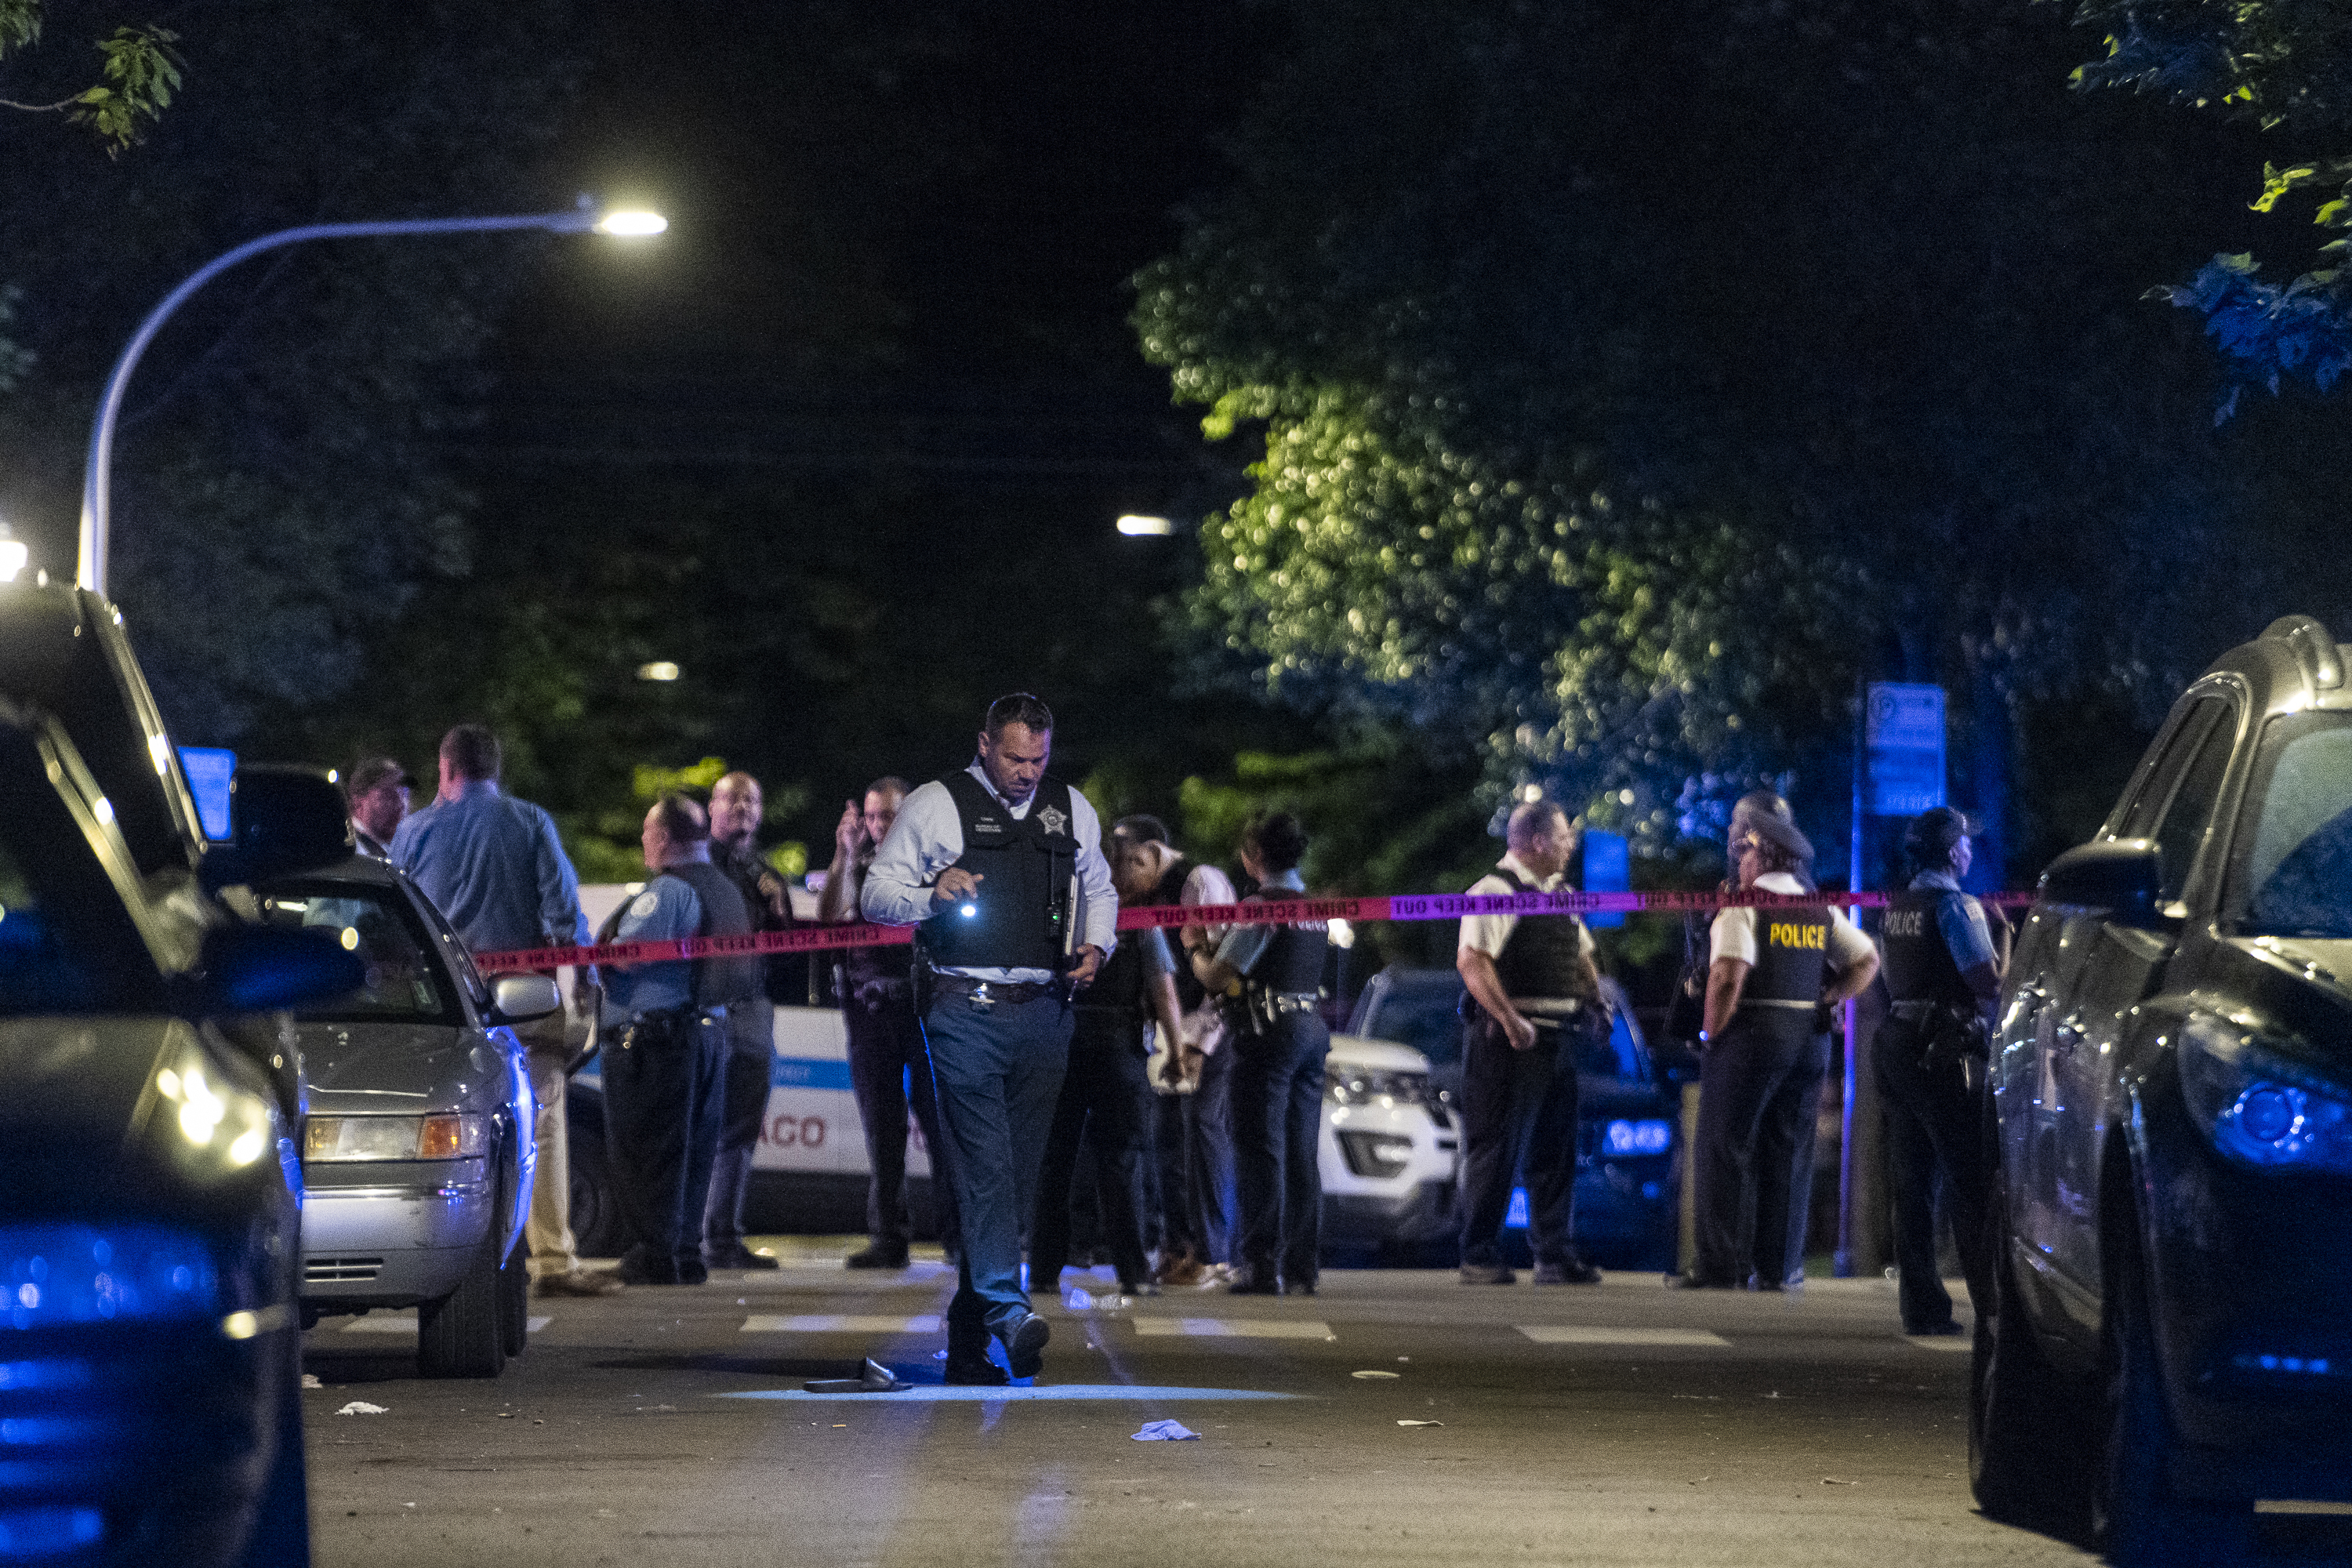 Chicago shootings leave 2 dead, at least 15 injured